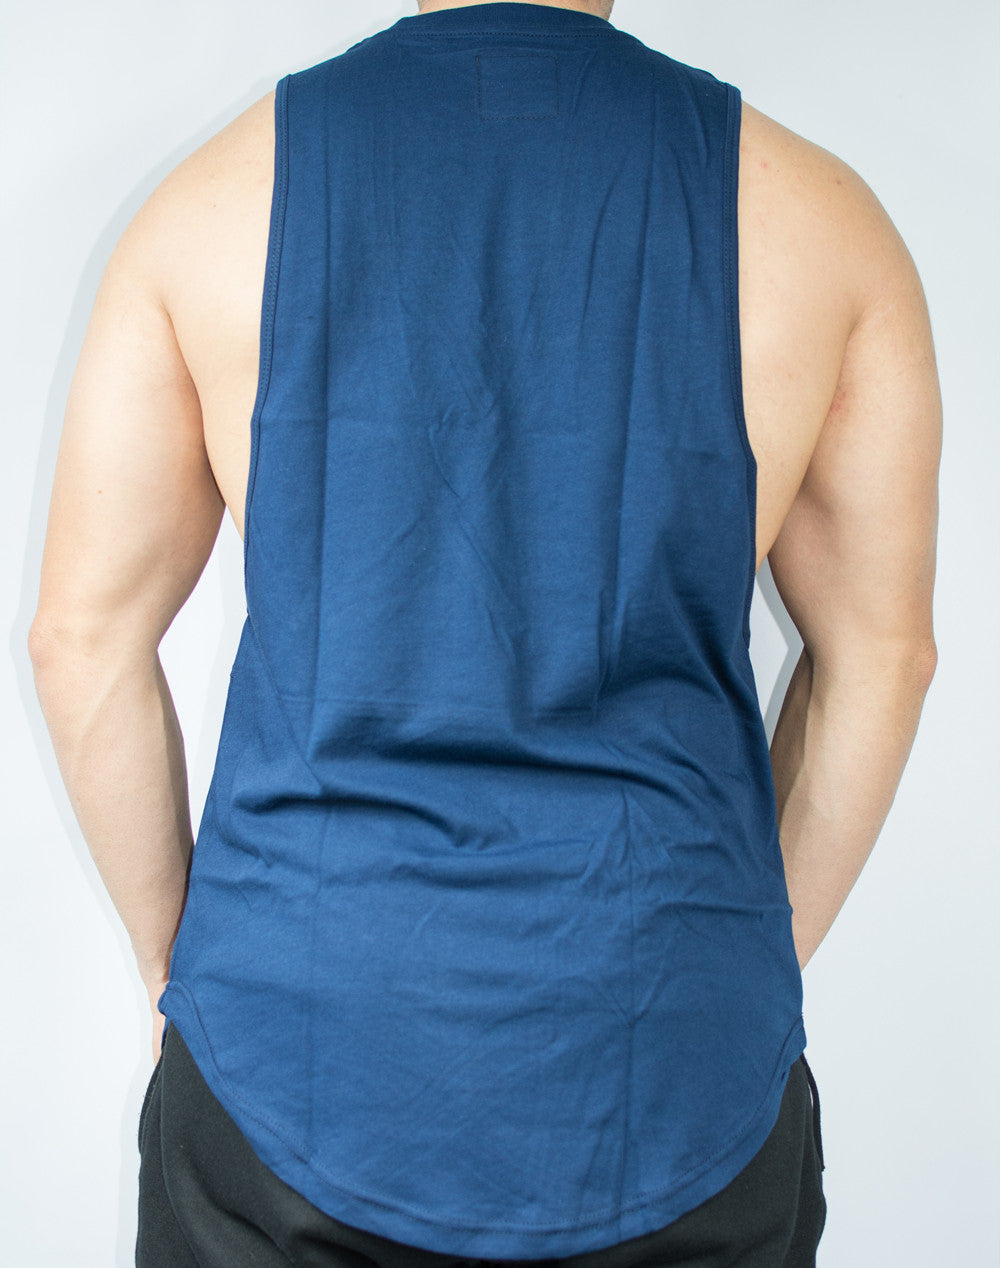 Scal Deluxe Cutoff Tee - Navy - Scal Clothing - 2